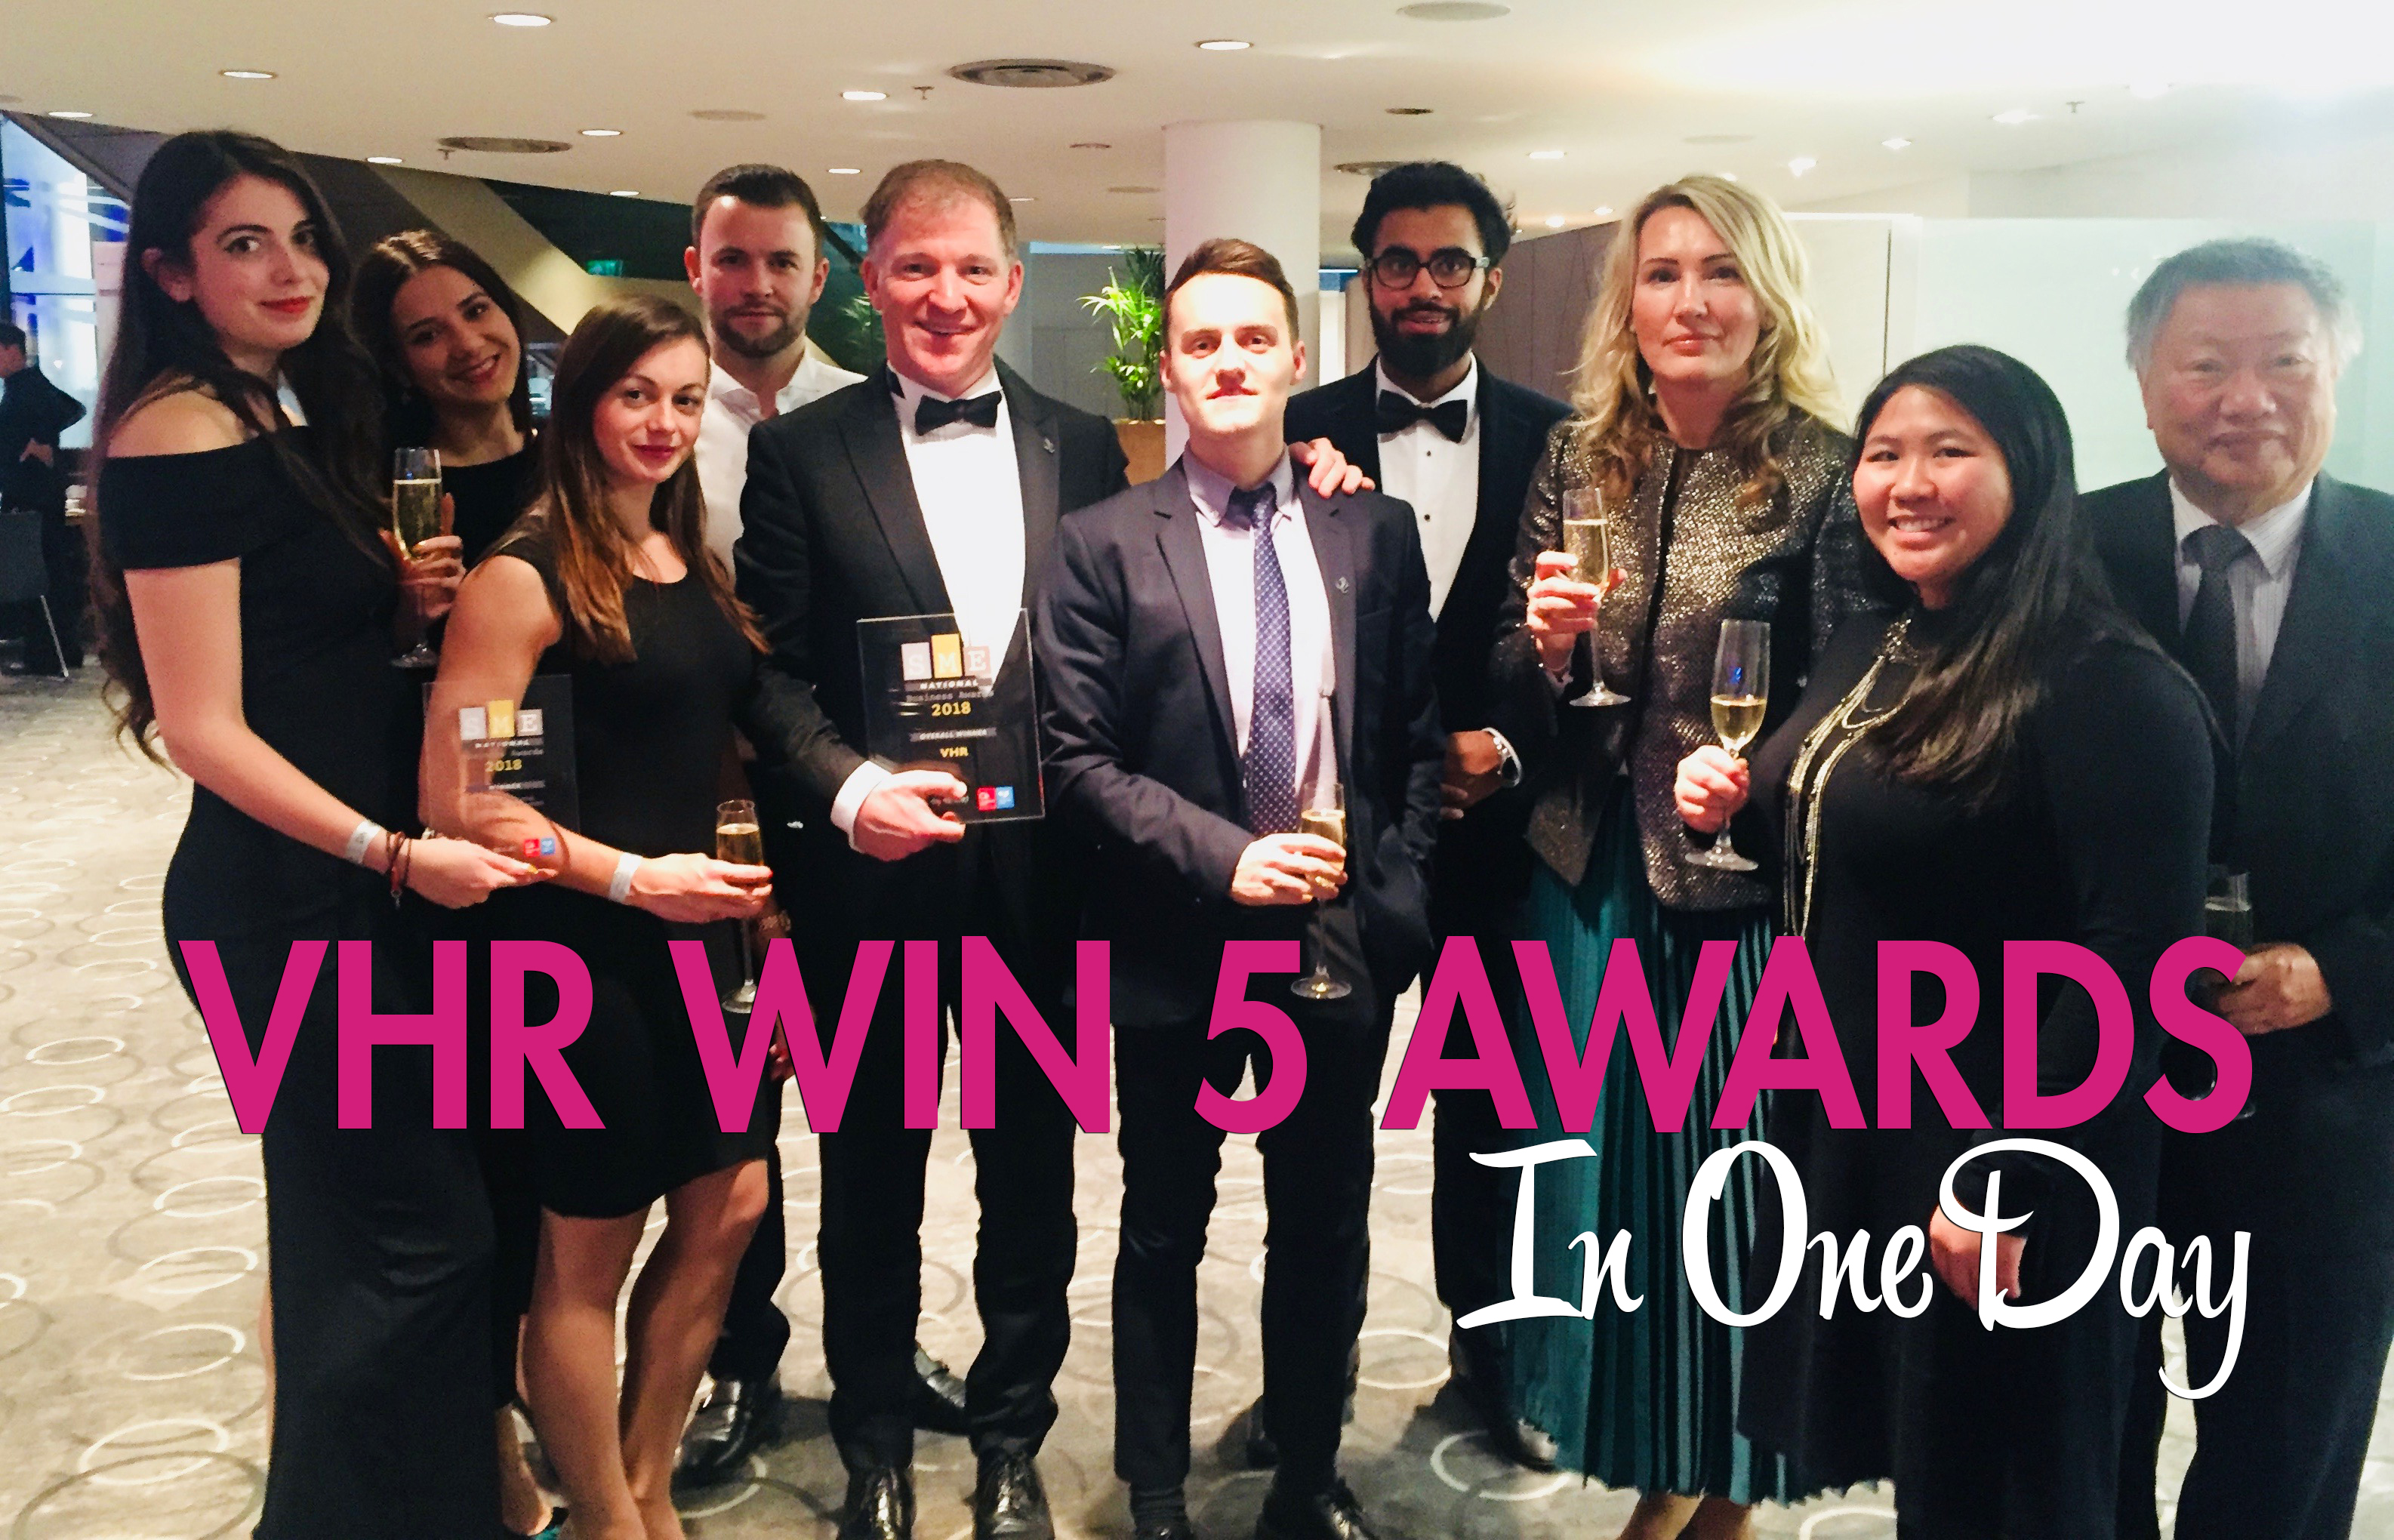 vhr win 5 awards in 1 day